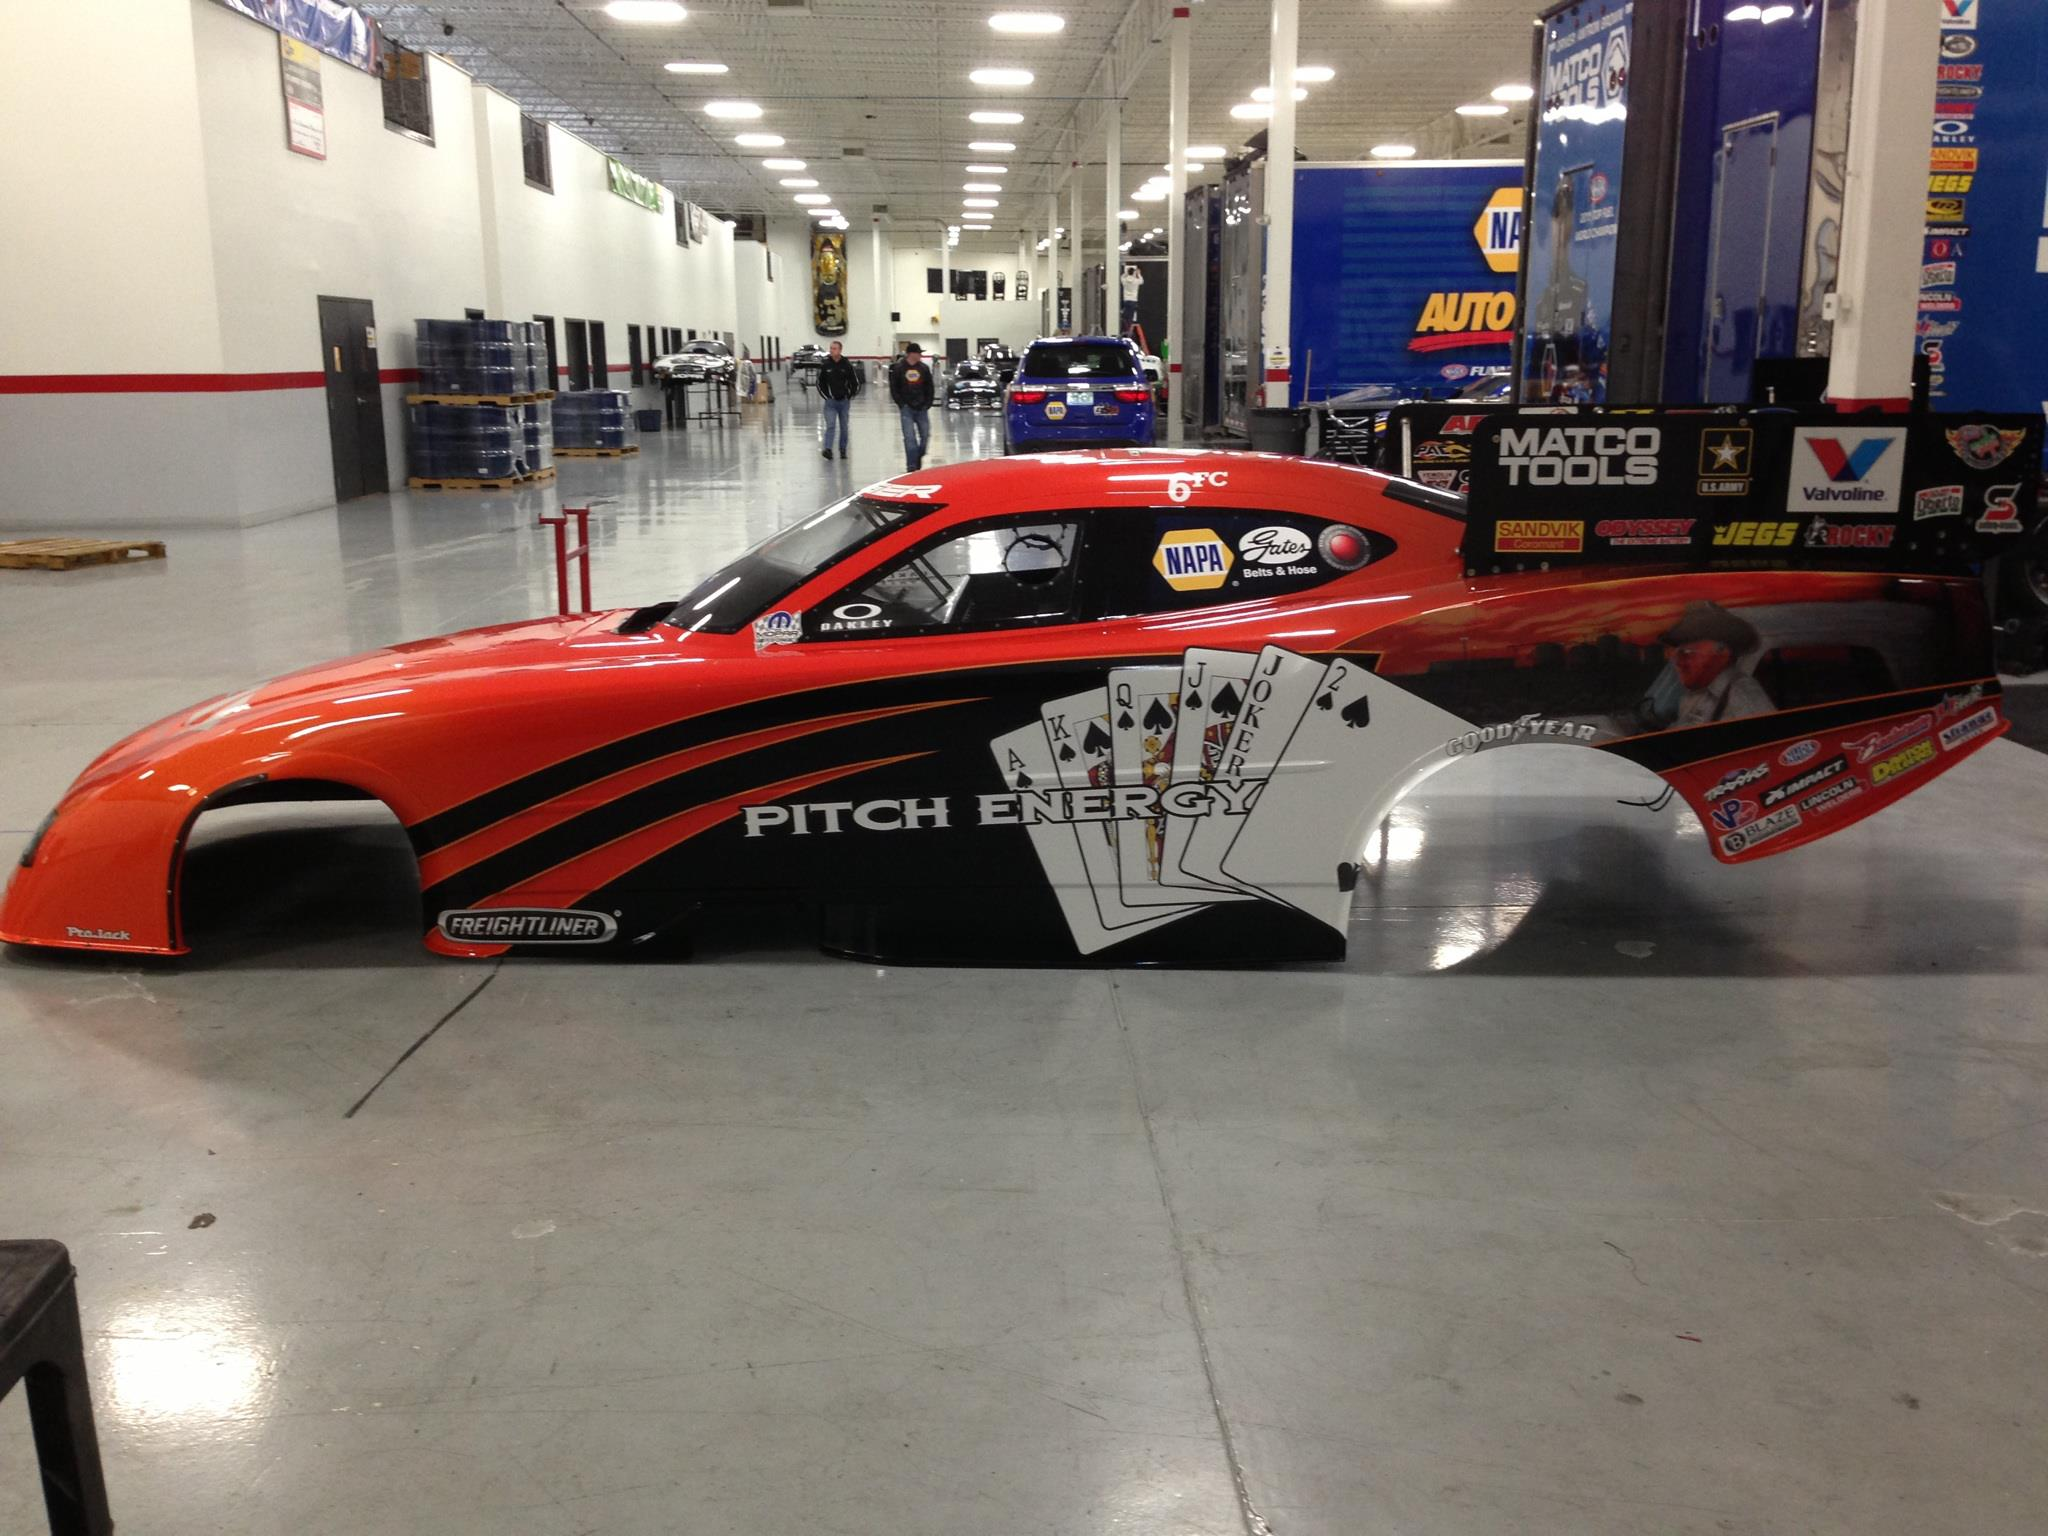 sneak peek: johnny gray's pitch energy funny car | competition plus